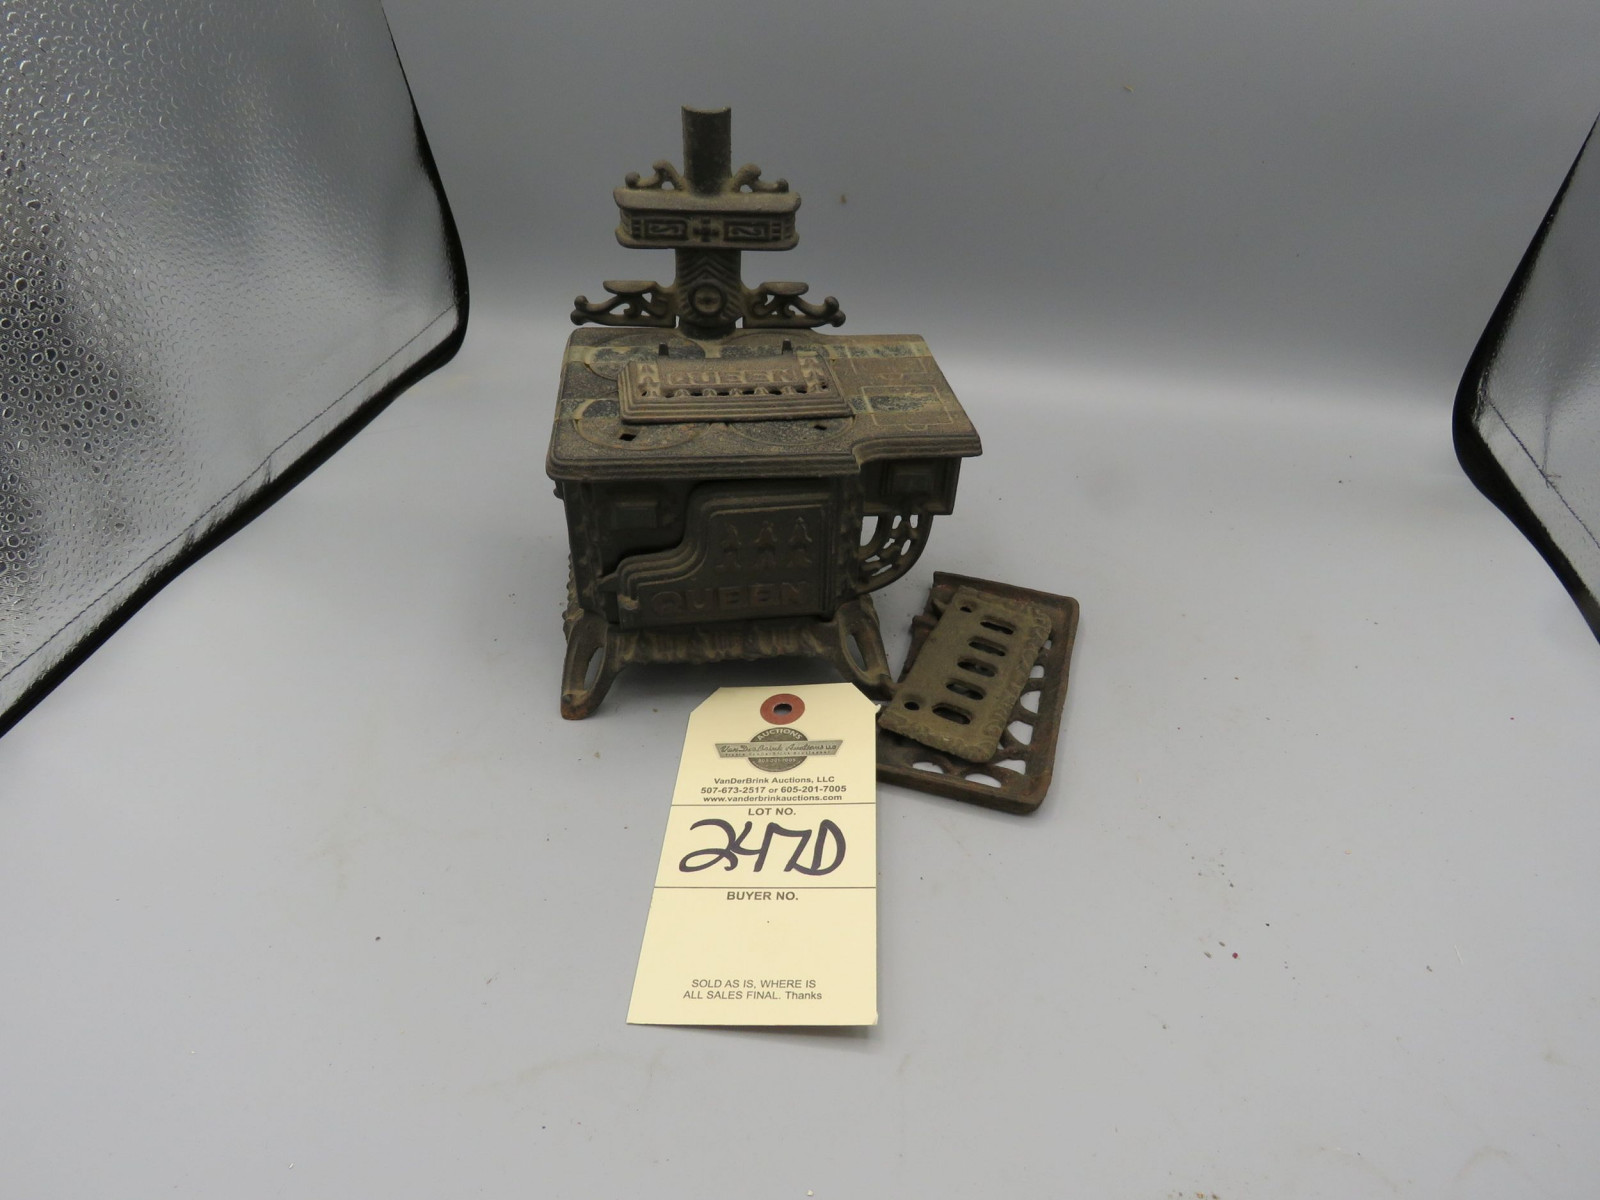 Cast Iron Sampler Stove - Image 1